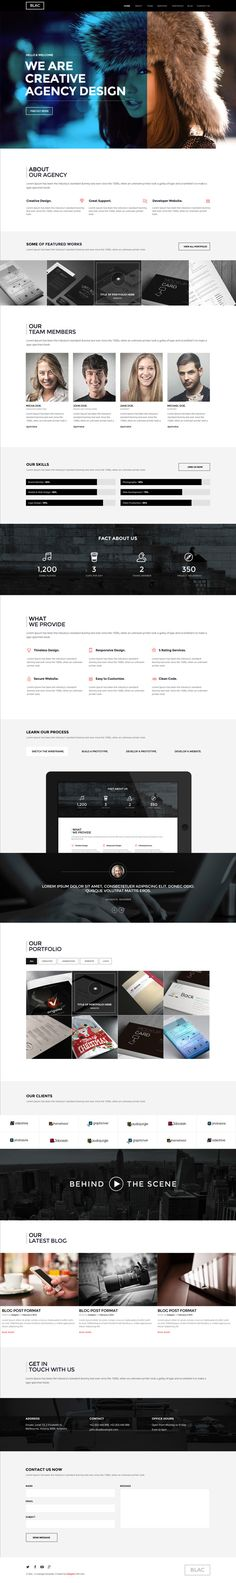 Buy Blac - Ultimate Simple One Page PSD Template by galigato on ThemeForest. Blac is a Ultimate Simple One Page PSD Template. Consist of 9 PSD Template and based 1170 px grid system, very easy t. Mobile Web Design, Web Ui Design, Page Design, Graphic Design, Website Design Inspiration, Web Layout, Layout Design, Maquette Site Web, Web Design Projects